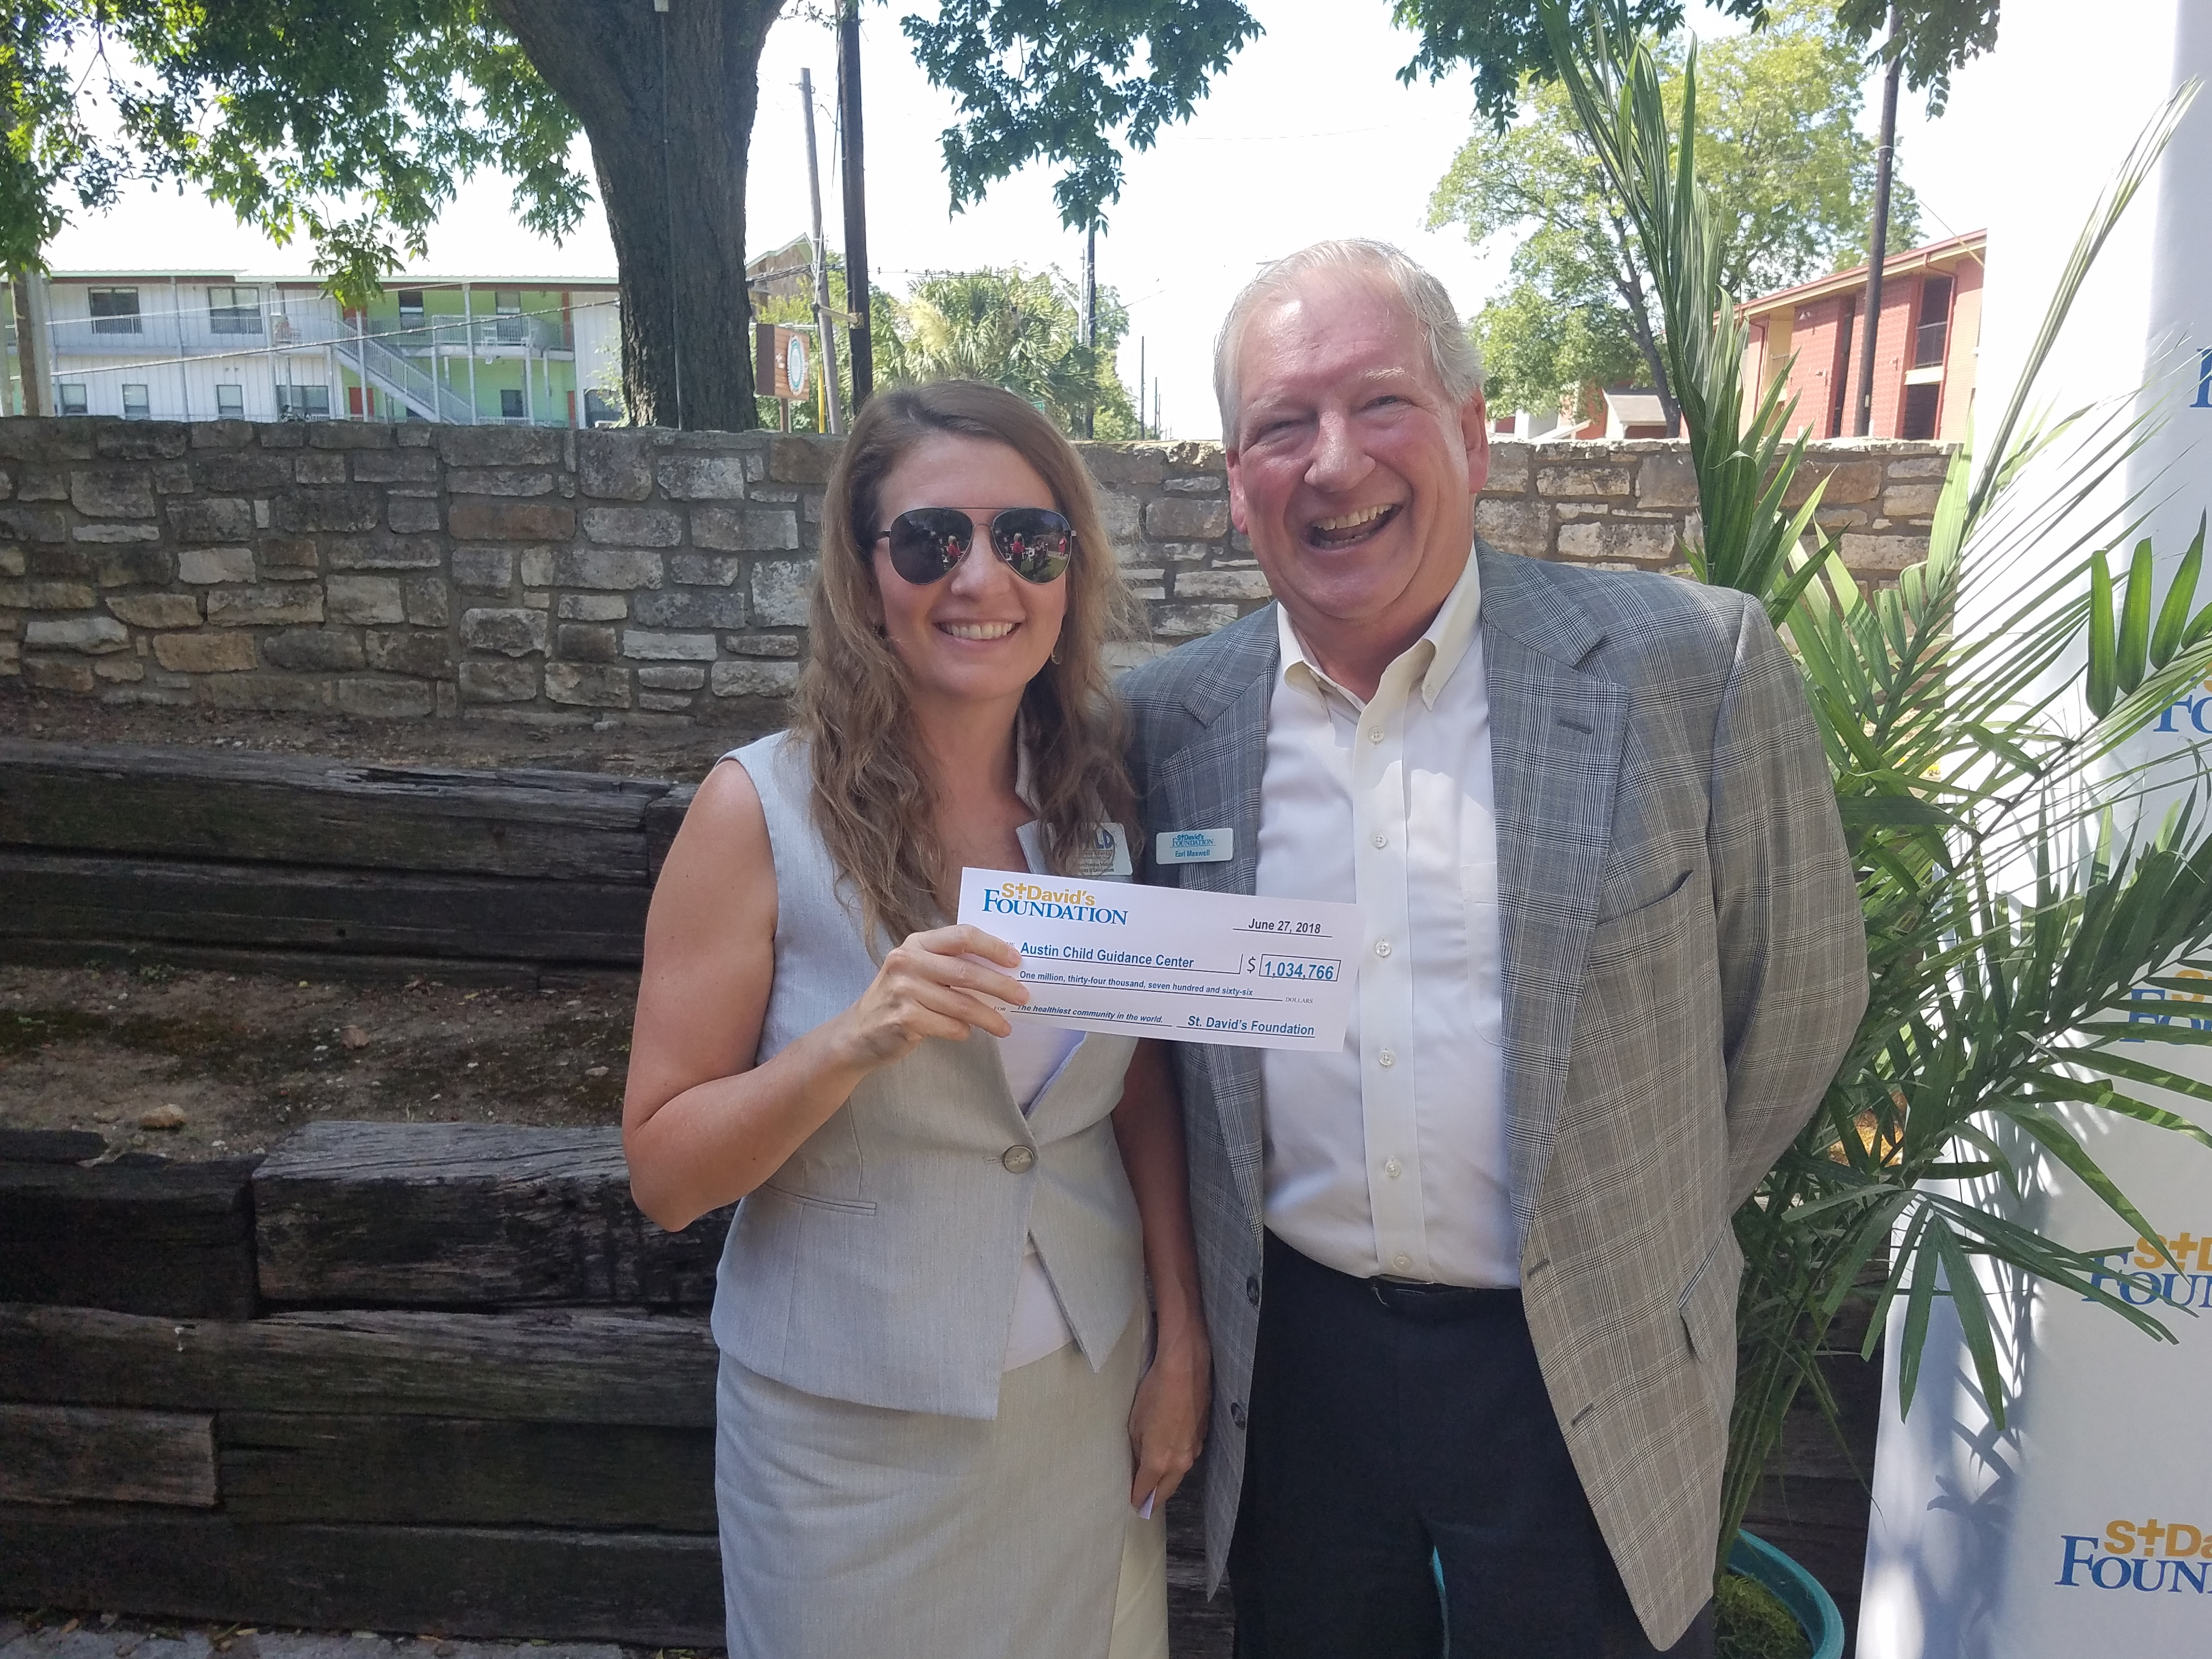 ACGC Receives Grant From St. David's Foundation